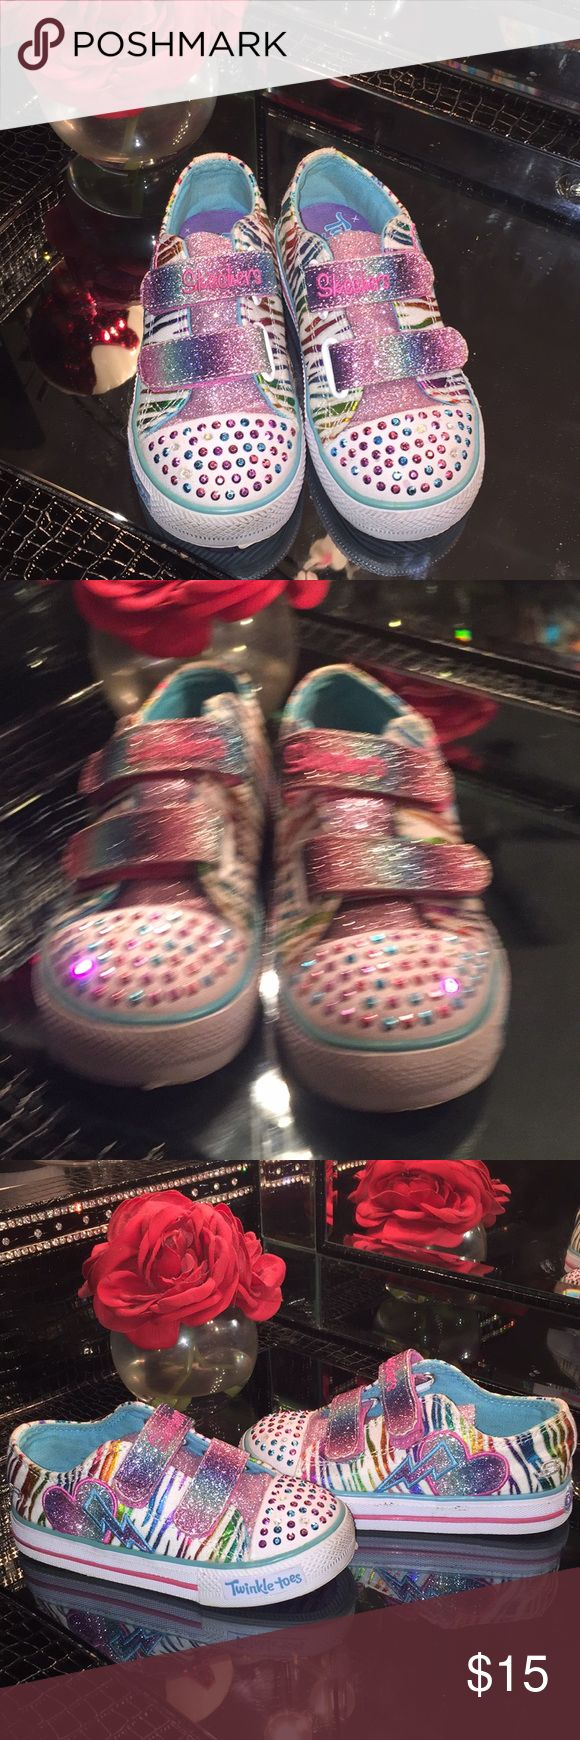 Sketcher Twinkle Toe Toddler size 9.5 Toddler sizes